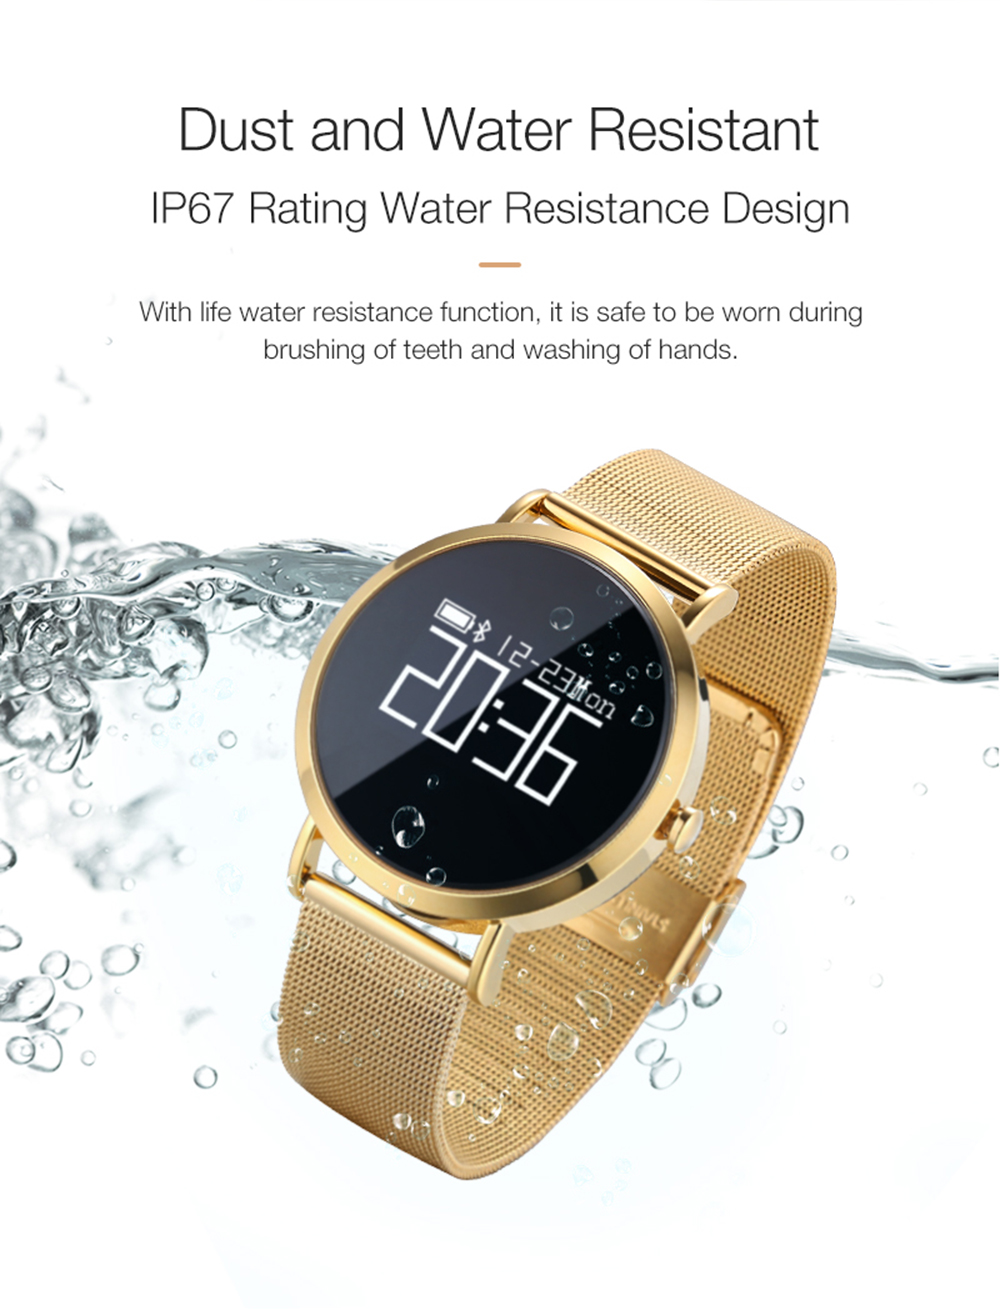 696 Smart Watch Men CV08 Wristwatch Women Sports Smartwatch Fitness Tracker Heart Rate Blood Pressure Monitor for Android IOS Ph 11